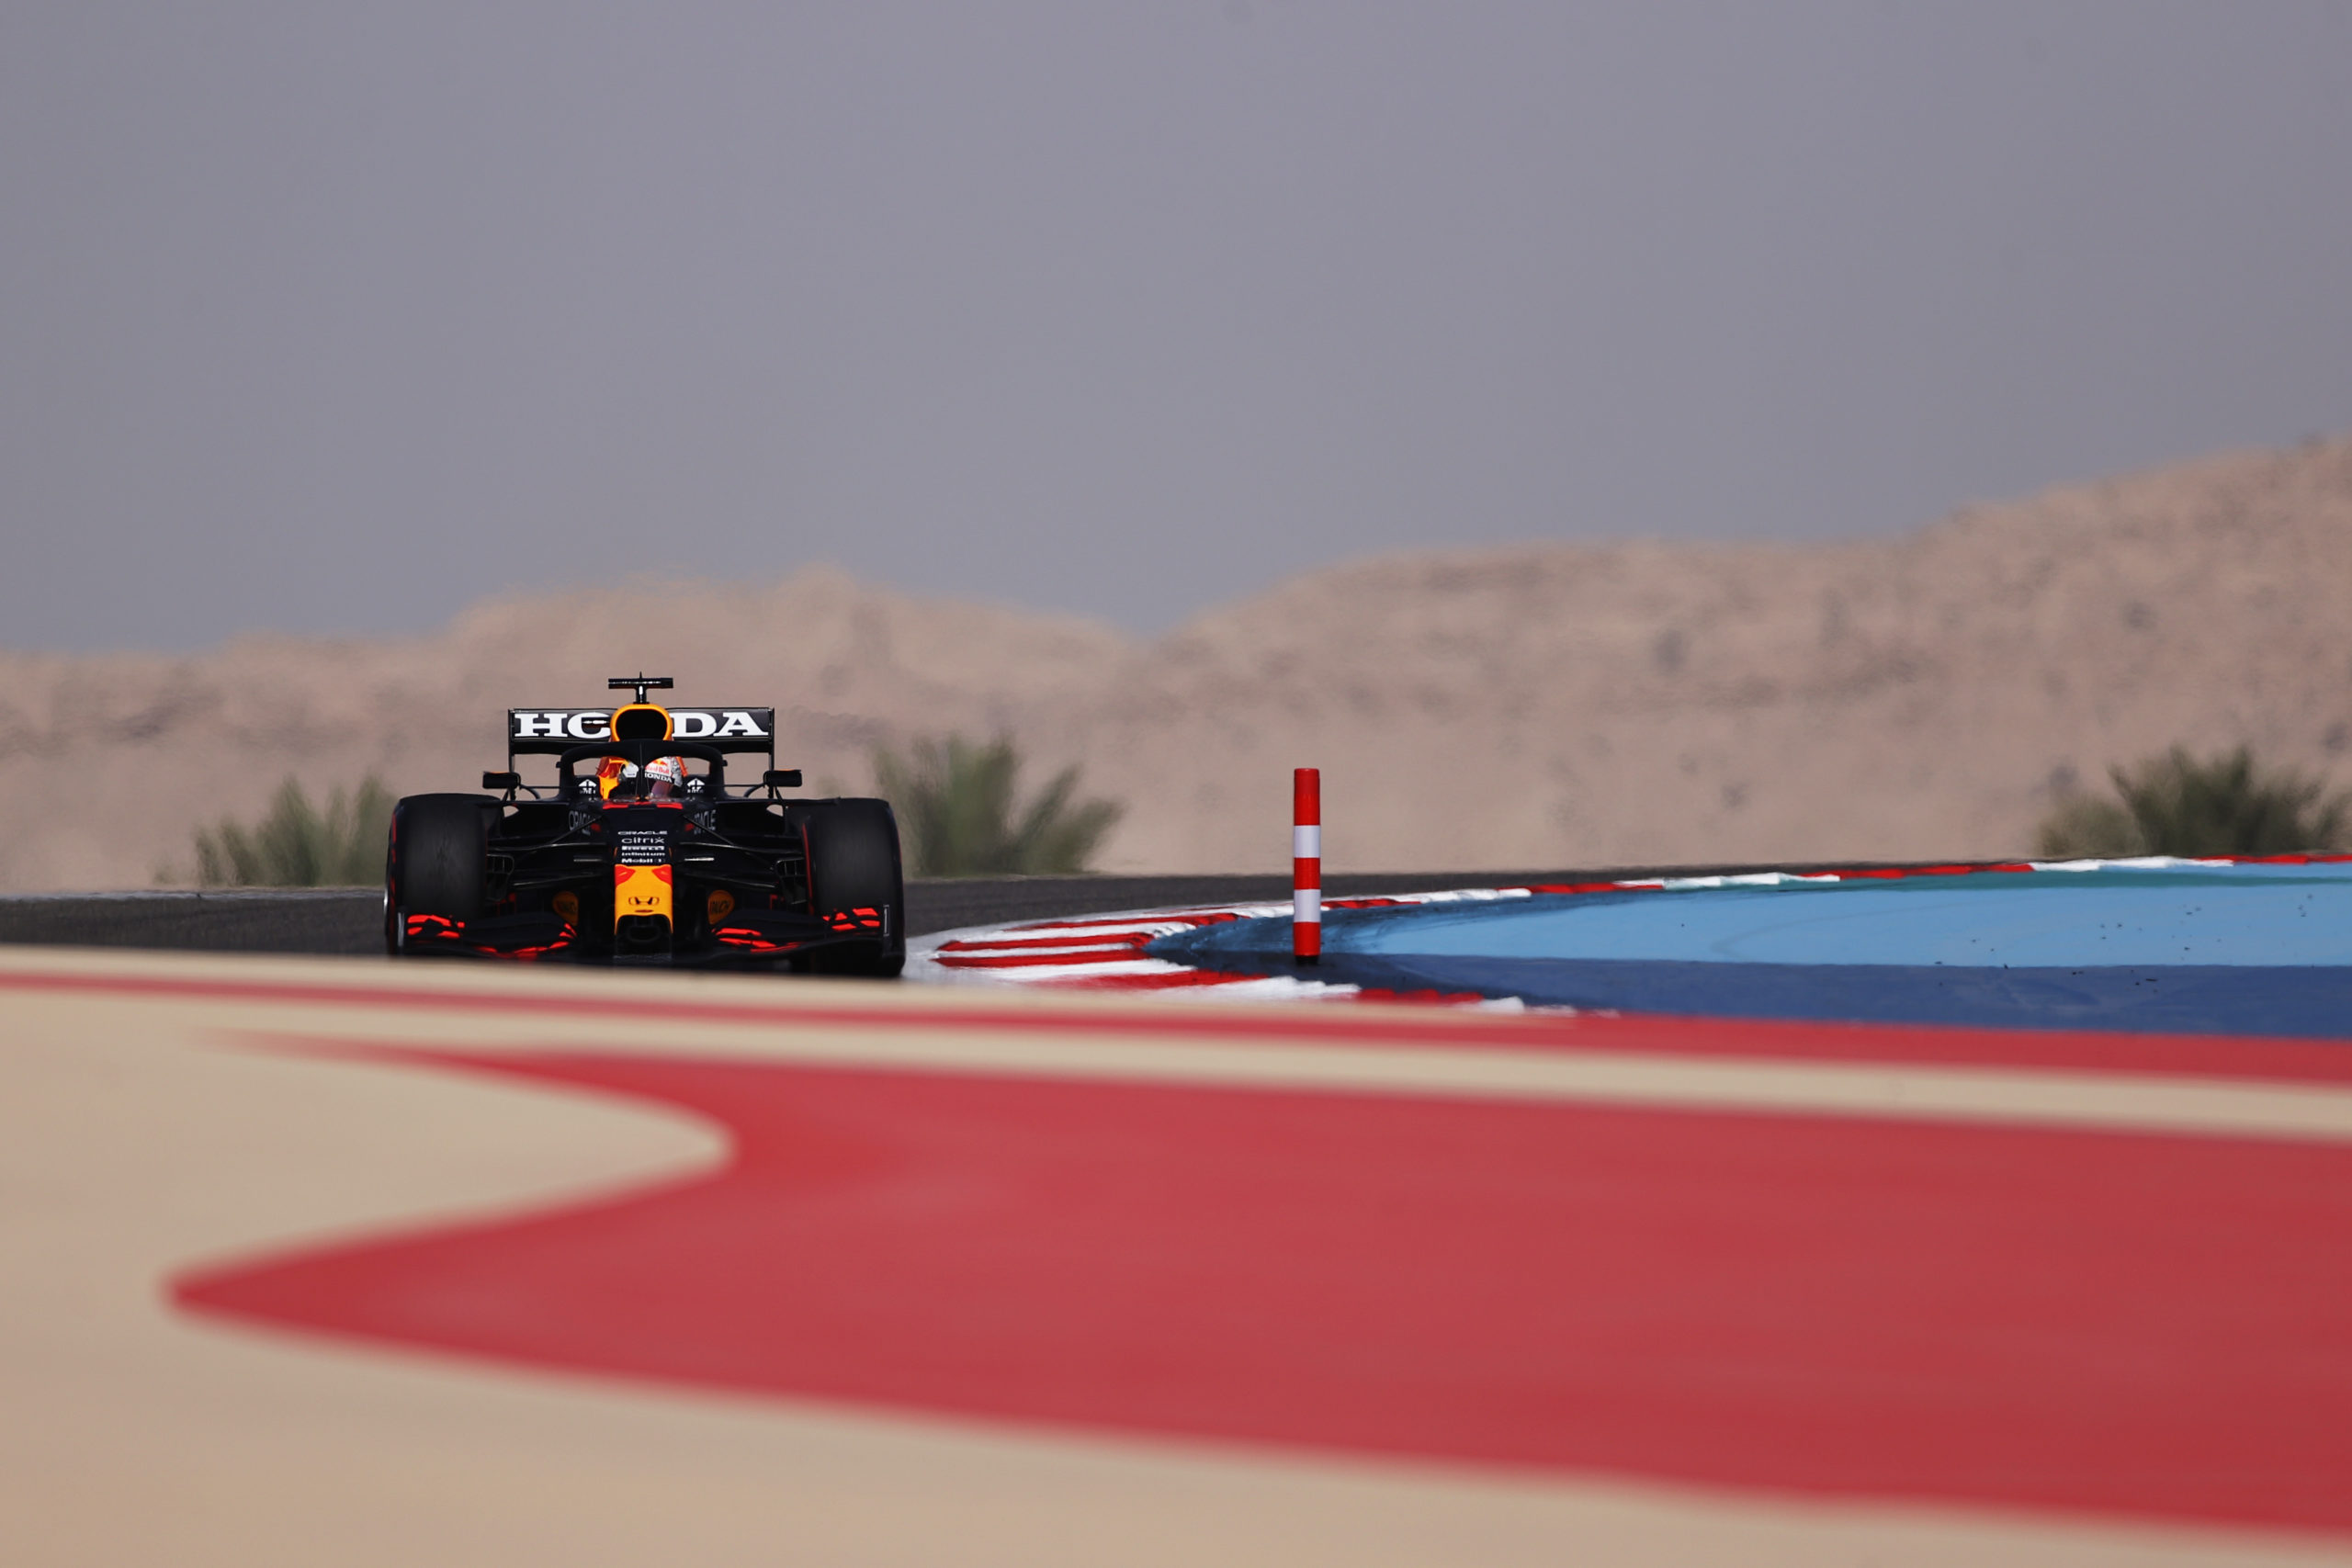 BAHRAIN, BAHRAIN - MARCH 26: Max Verstappen of the Netherlands driving the (33) Red Bull Racing RB16B Honda drives on track during practice ahead of the F1 Grand Prix of Bahrain at Bahrain International Circuit on March 26, 2021 in Bahrain, Bahrain. (Photo by Lars Baron/Getty Images) // Getty Images / Red Bull Content Pool  // SI202103260614 // Usage for editorial use only //